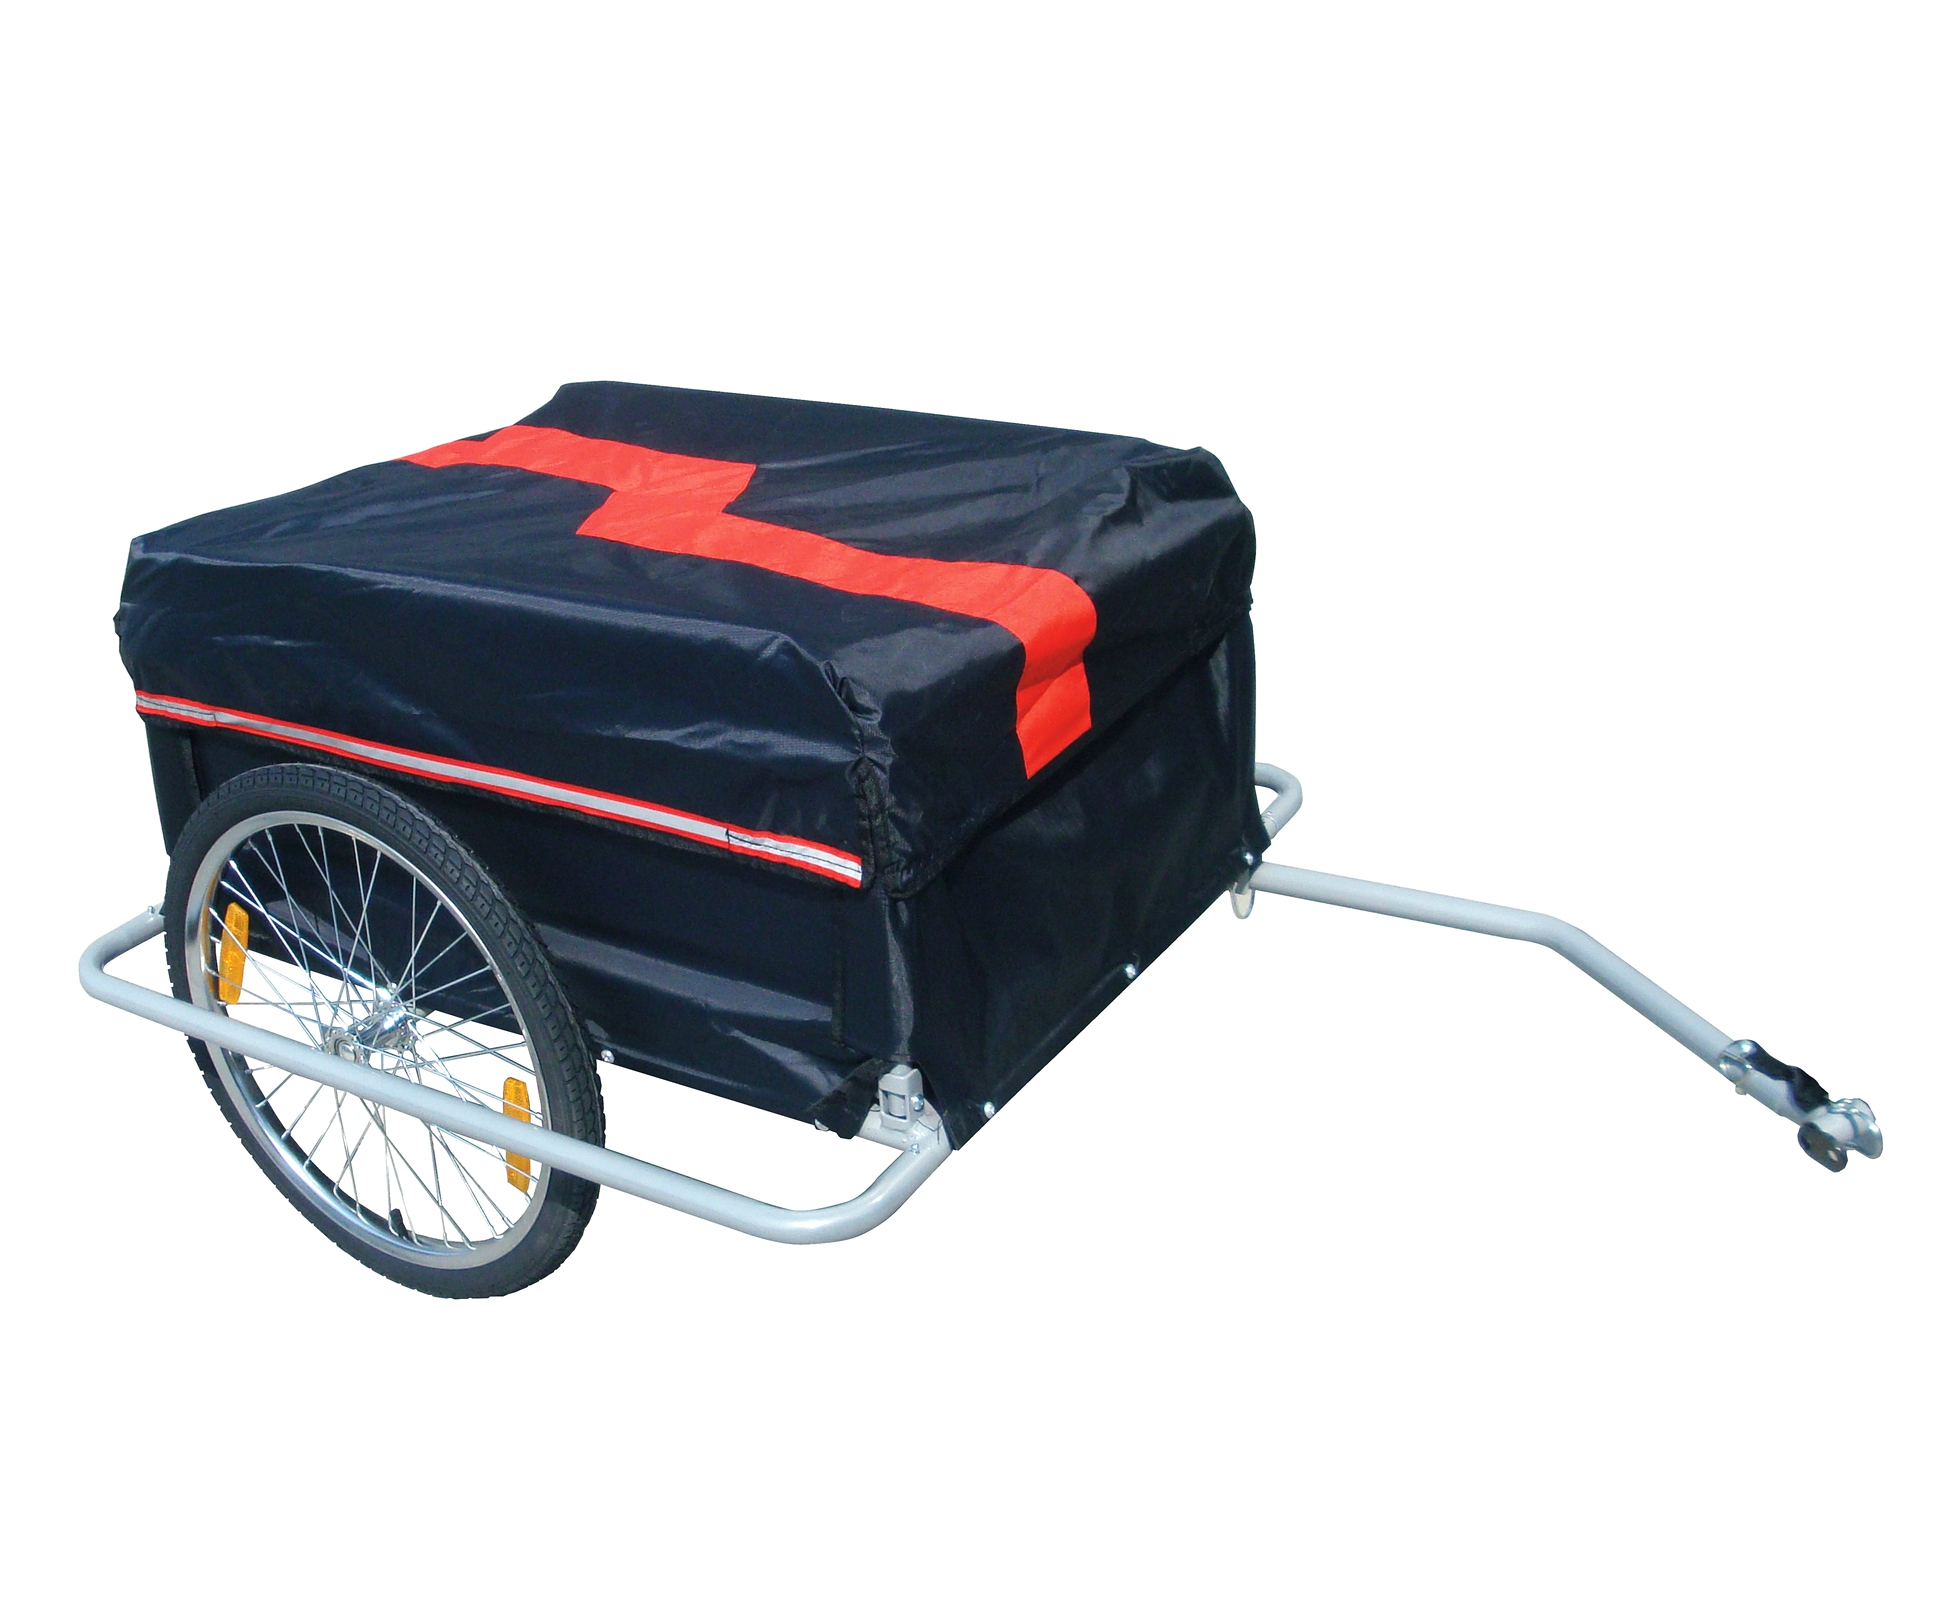 FoxHunter Red Black Folded Luggage Cargo Bike Bicycle Cycle Trailer Carrier New